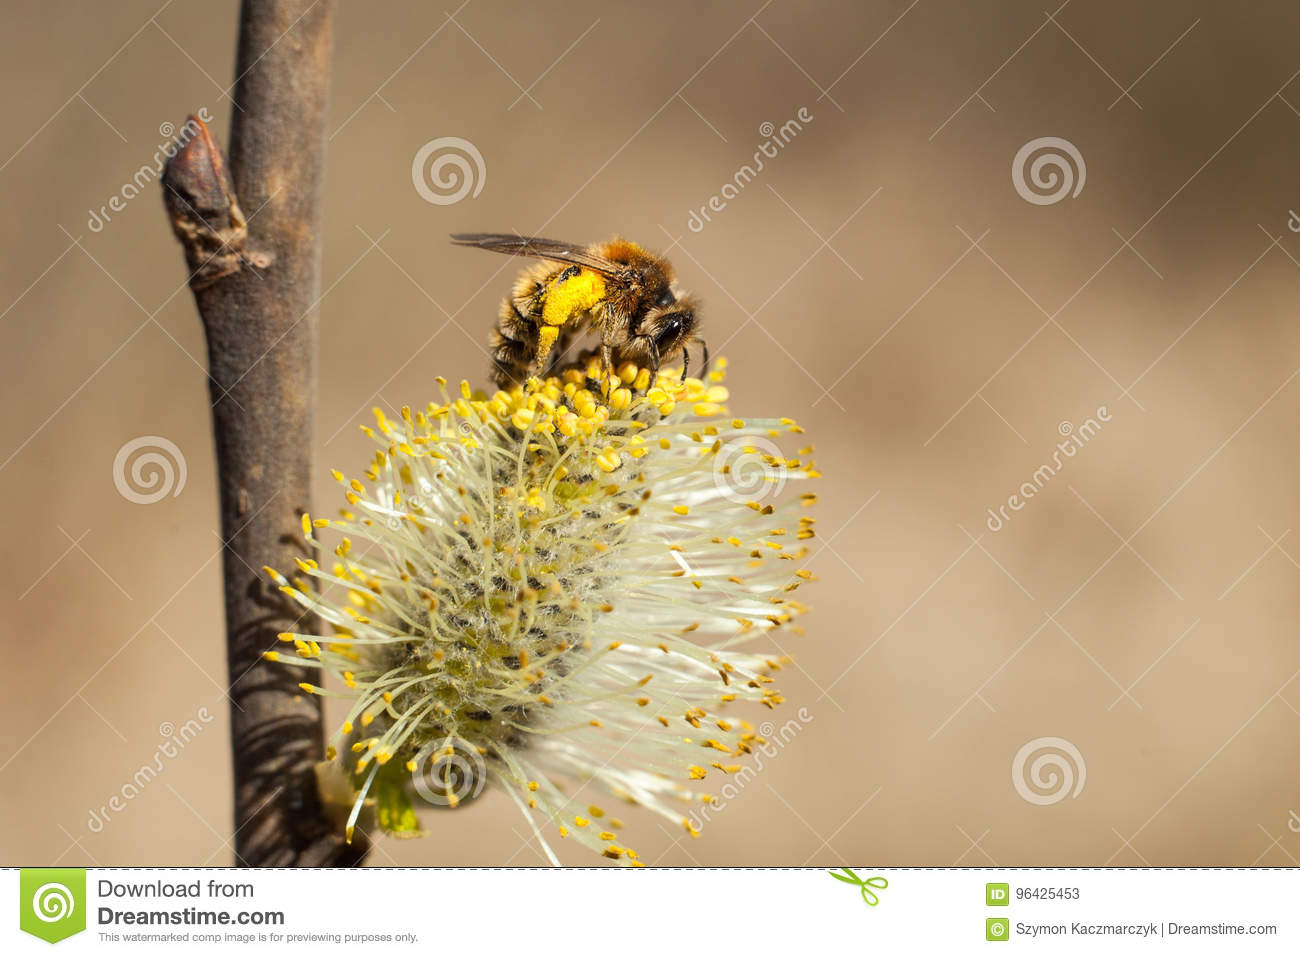 The bee collects pollen on the flowering tree.